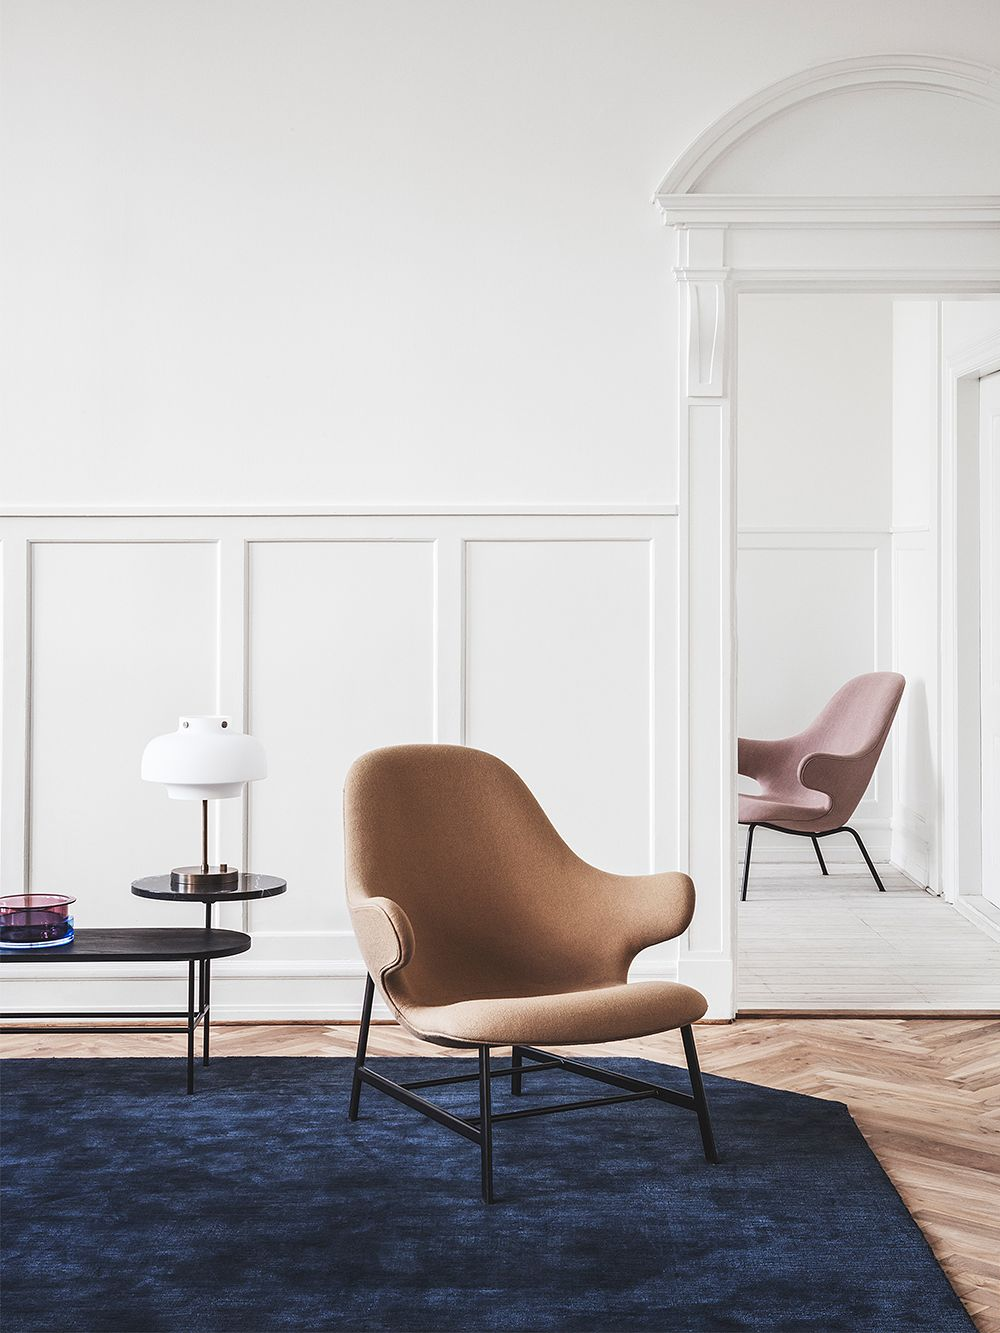 &Traditionin Catch JH14 lounge chairs in living room decor.